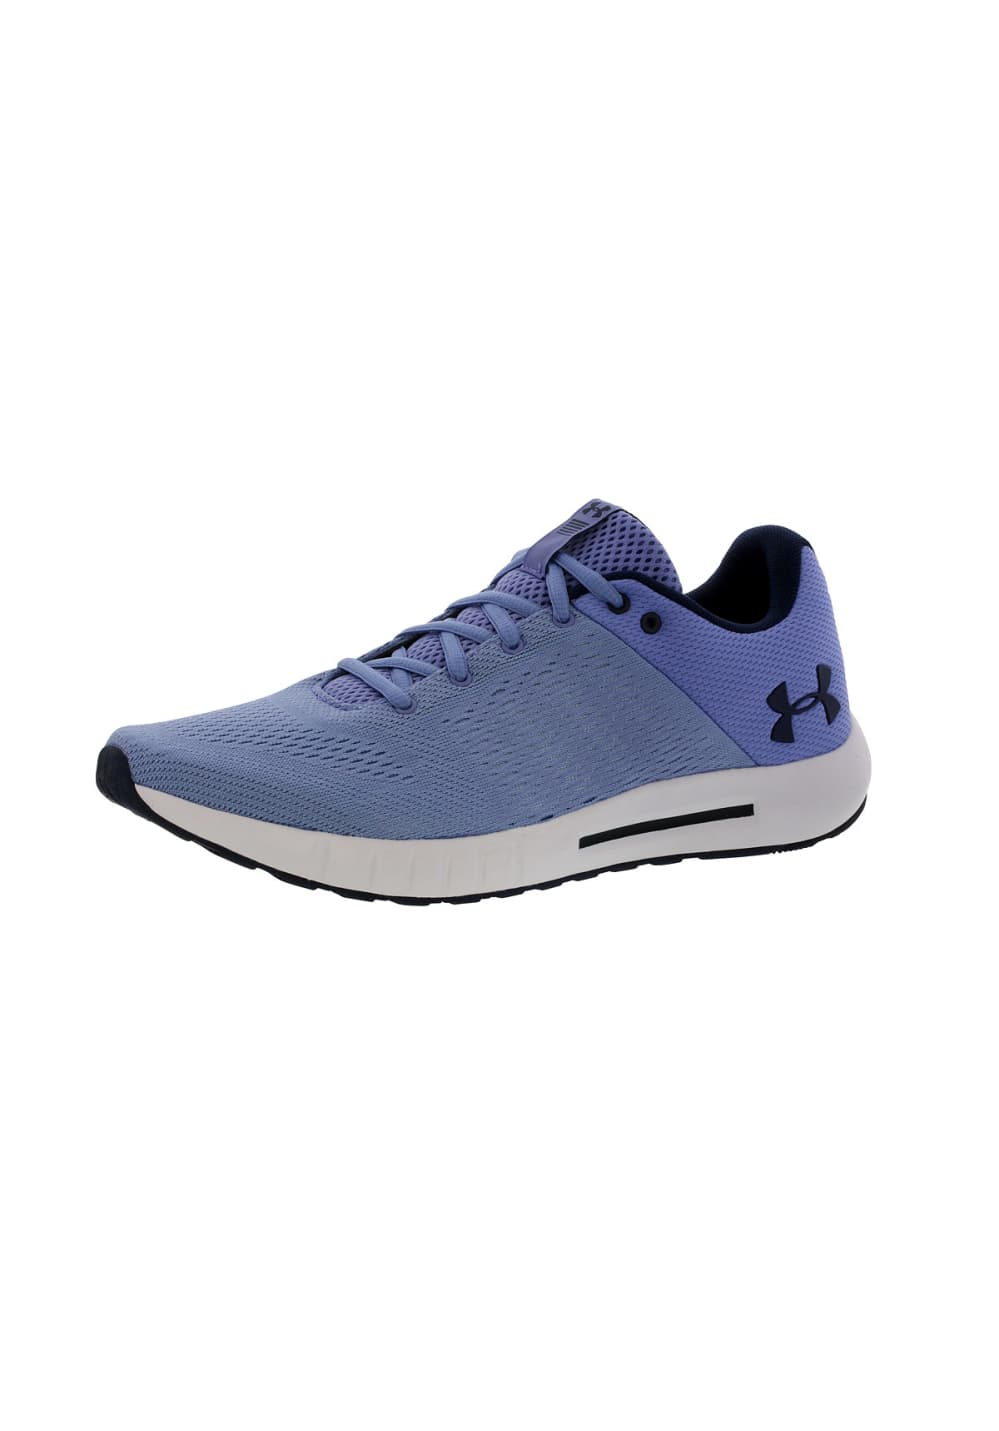 best service 9433f 79818 Next. Under Armour. Micro G Pursuit - Running shoes for Women